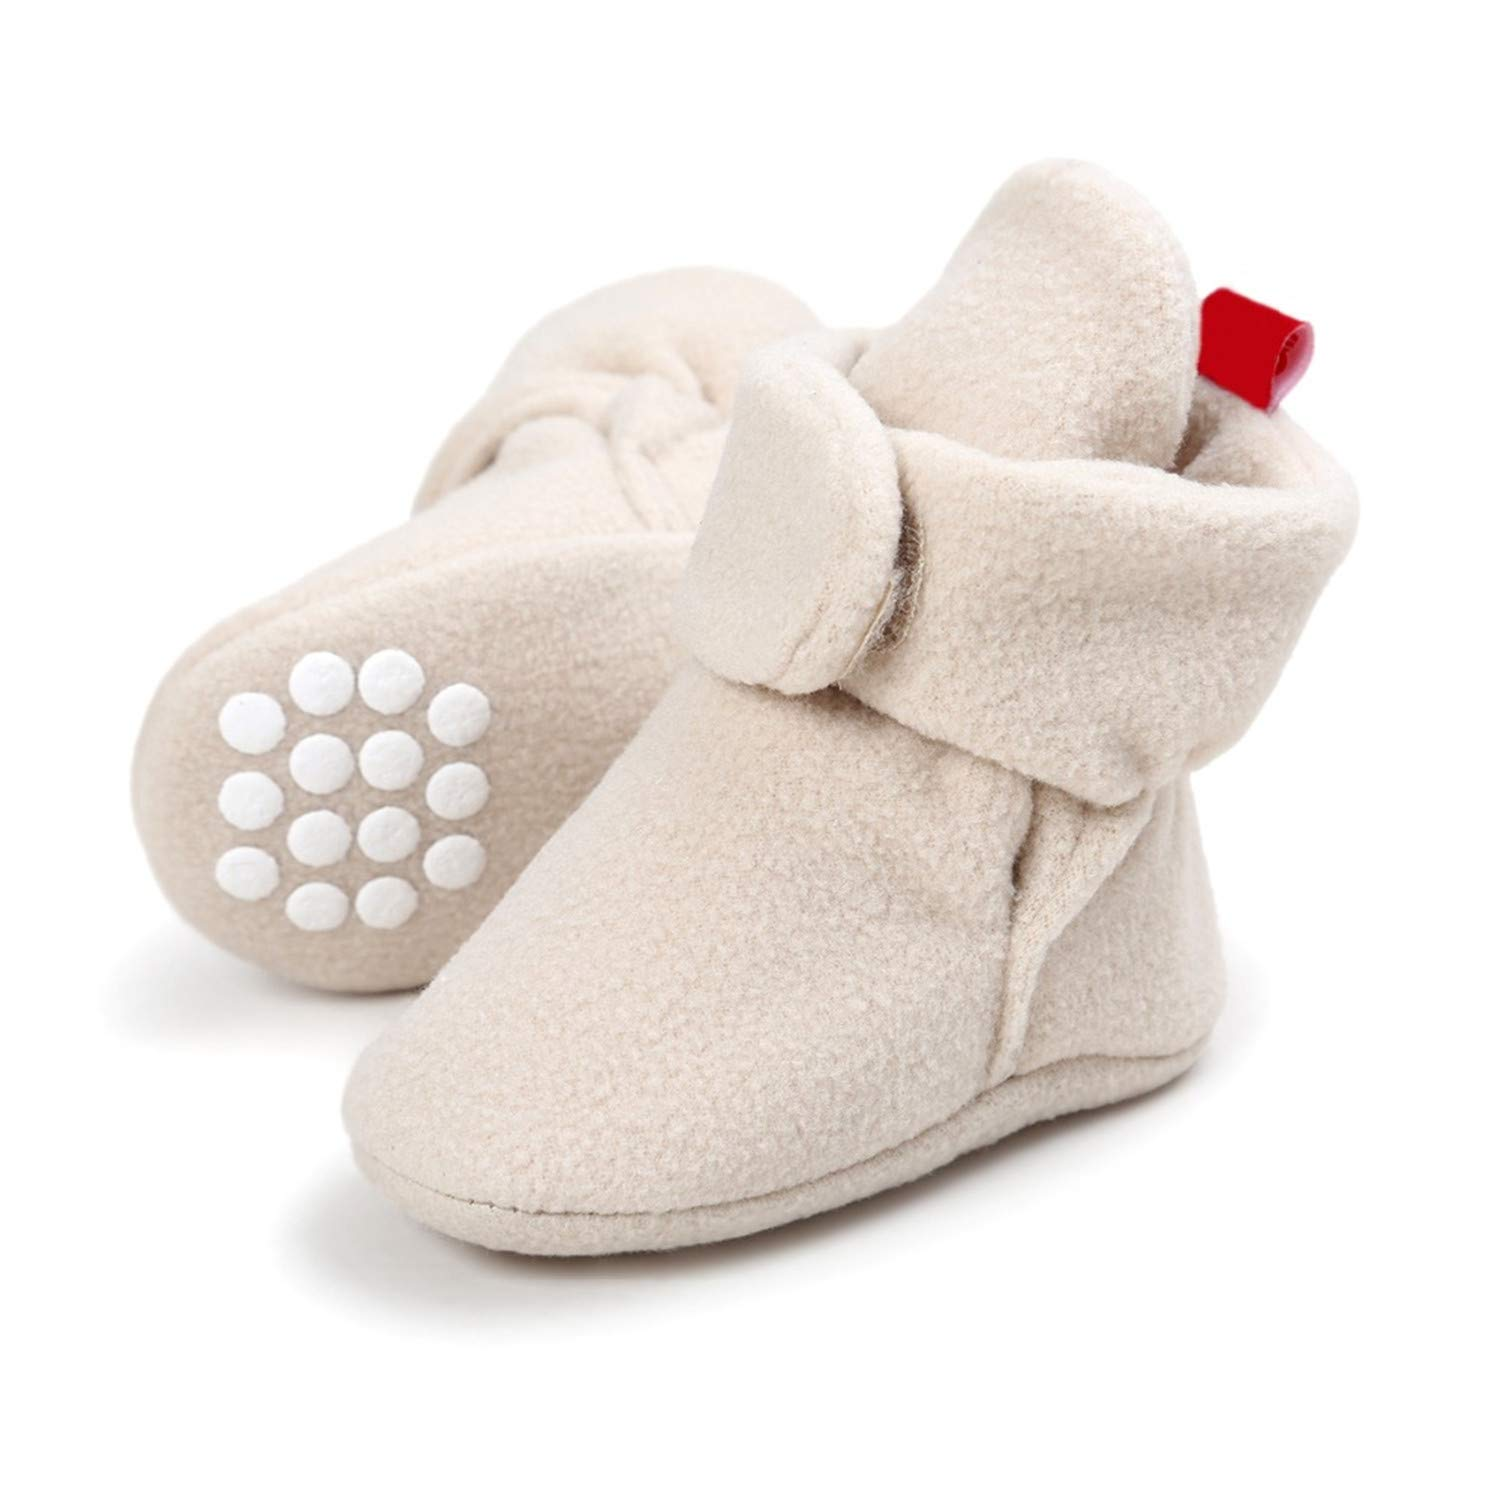 Fralina Cotton Leather Toddler Shoes Boys Winter Warm Faux Fleece Newborn Baby Crib Shoes Anti-Slip